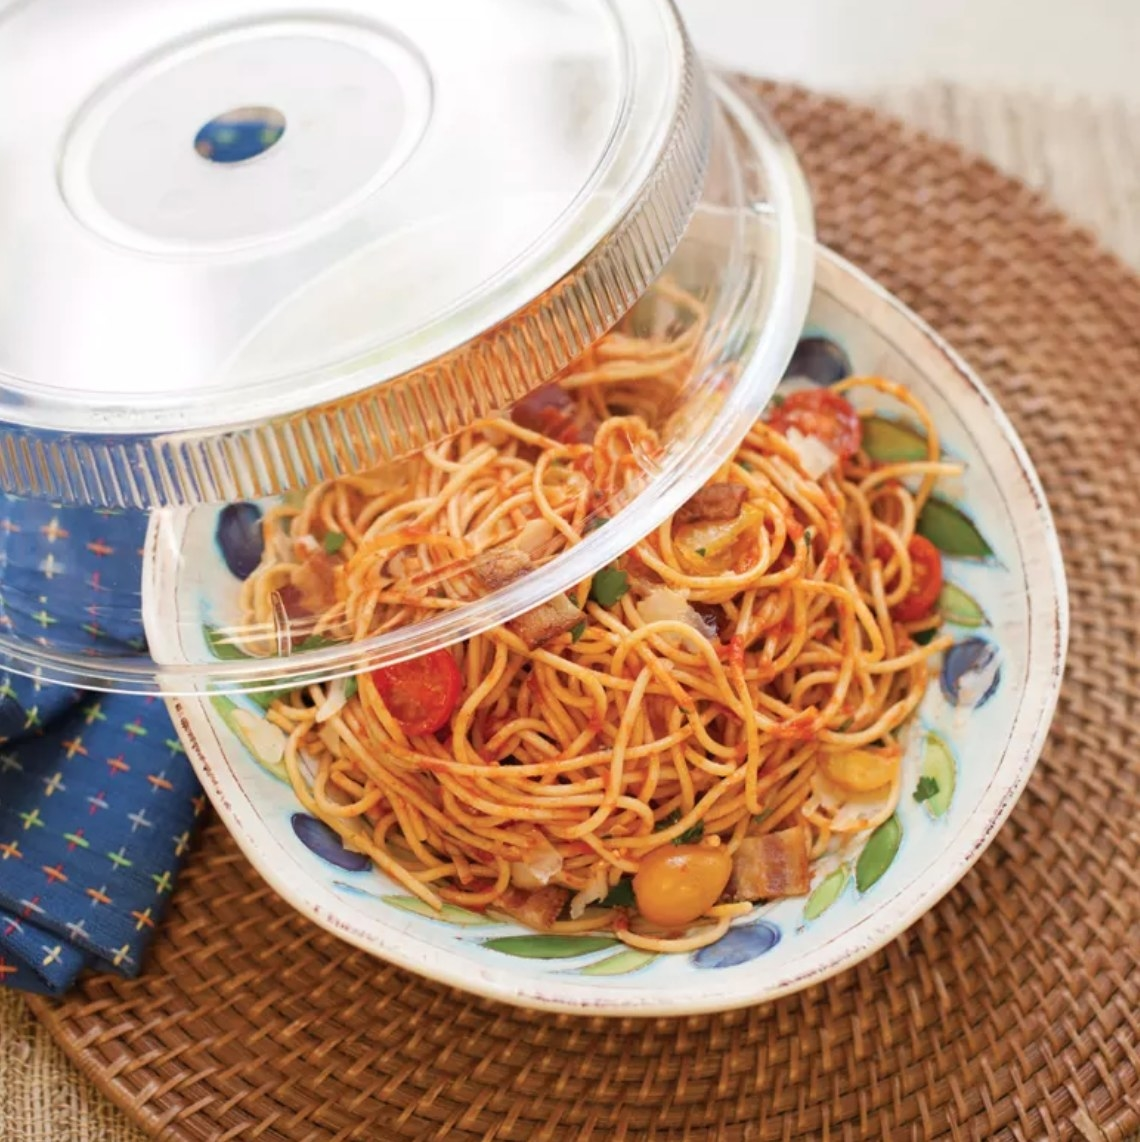 The plate cover being used over spaghetti